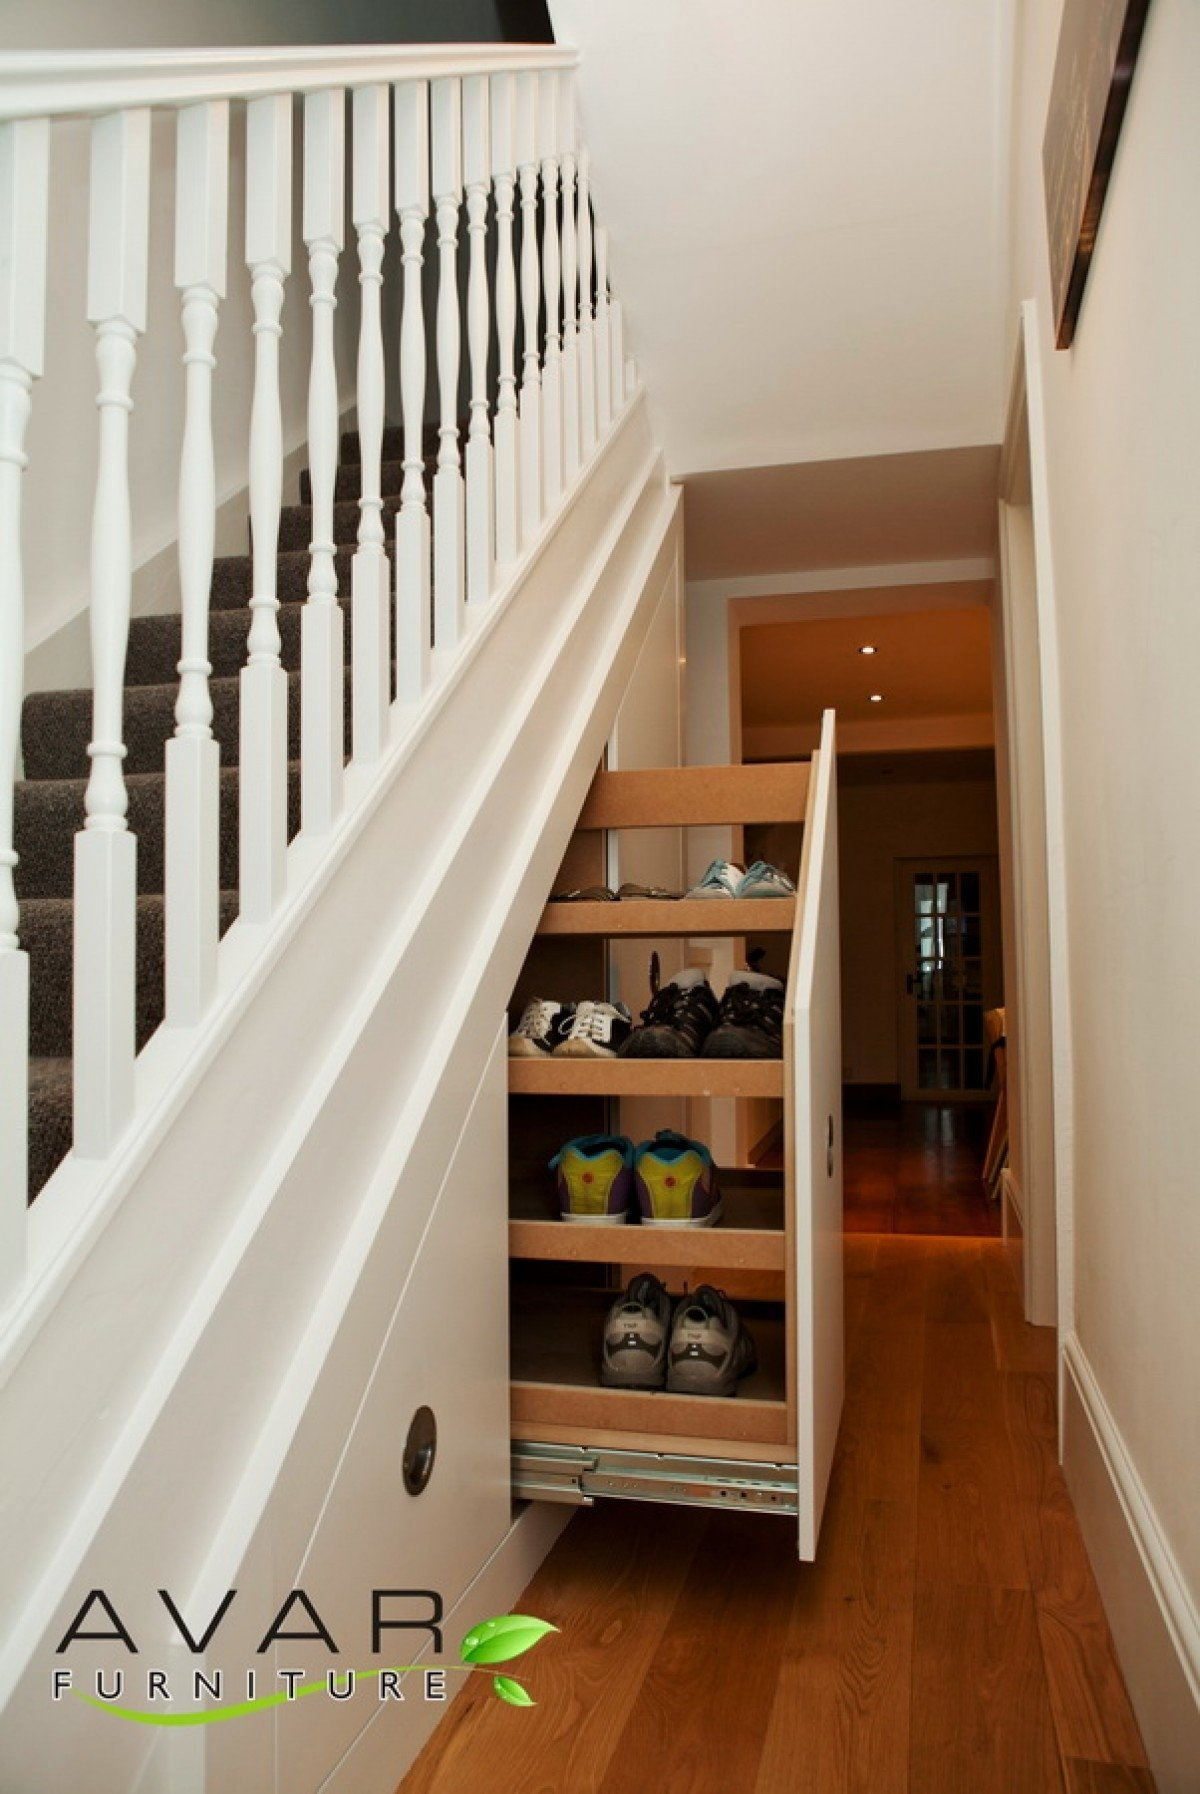 10 Most Popular Under The Stairs Storage Ideas c6b9d39dca92 under stairs storage ideas gallery 10 north london uk 2020